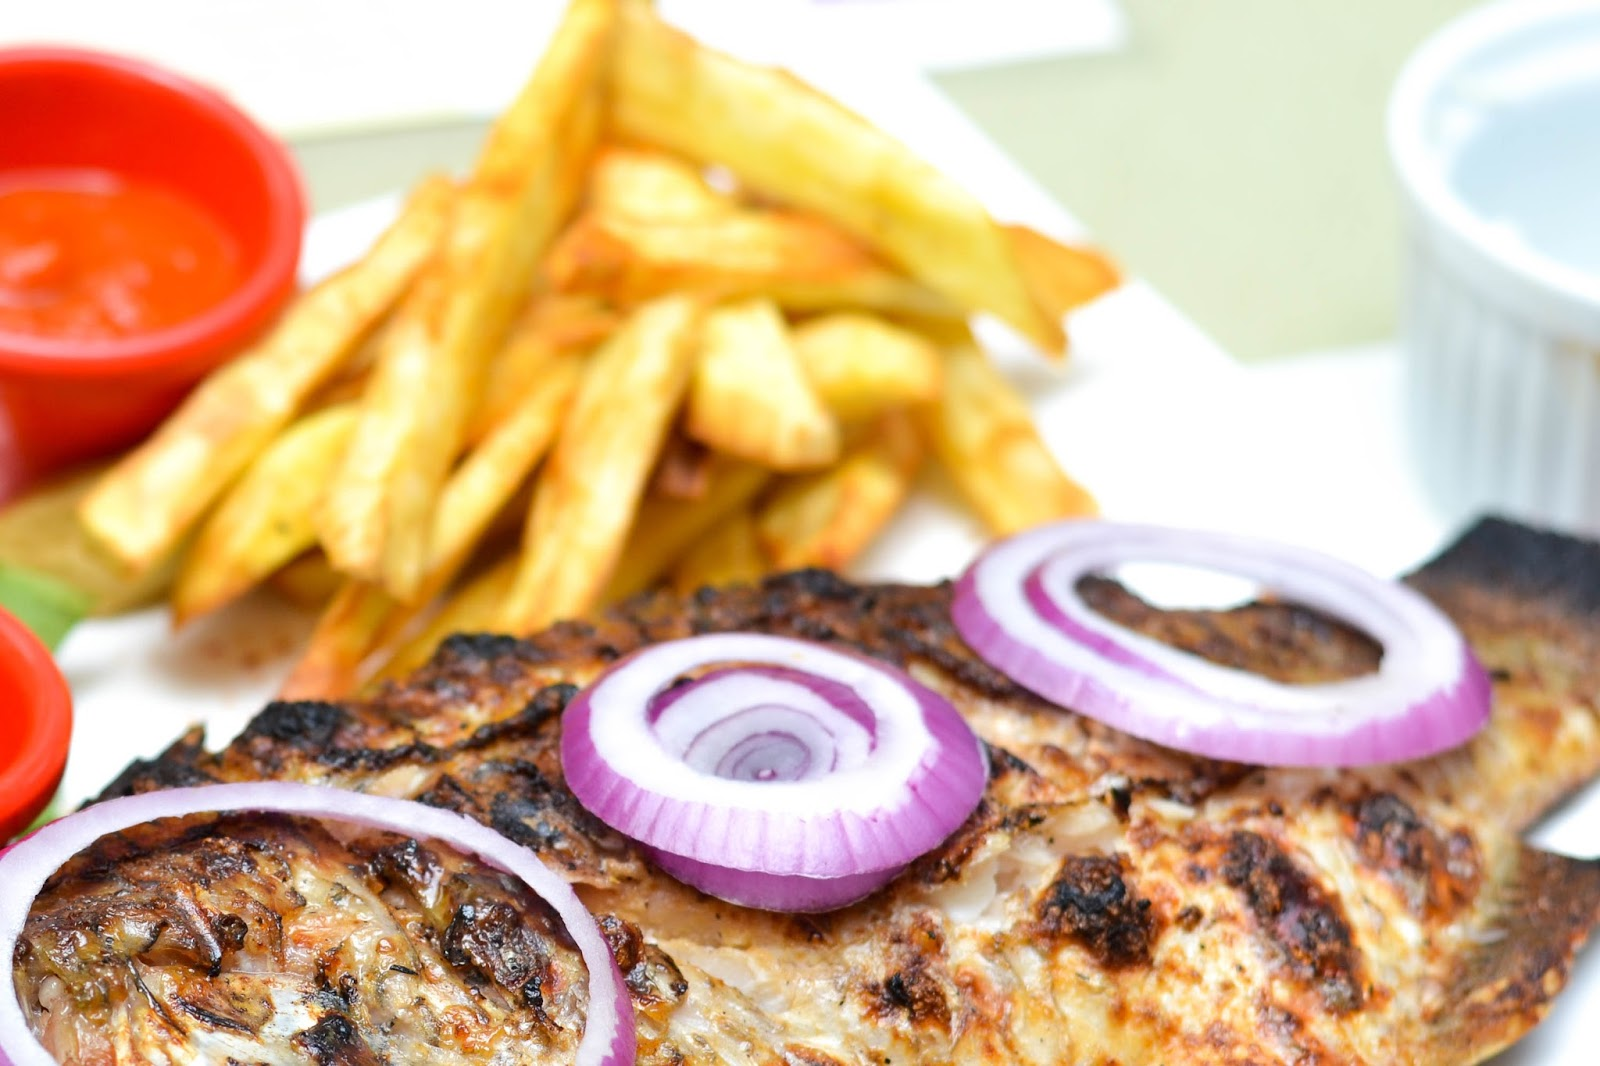 Grilled Fish with Red Onions on top